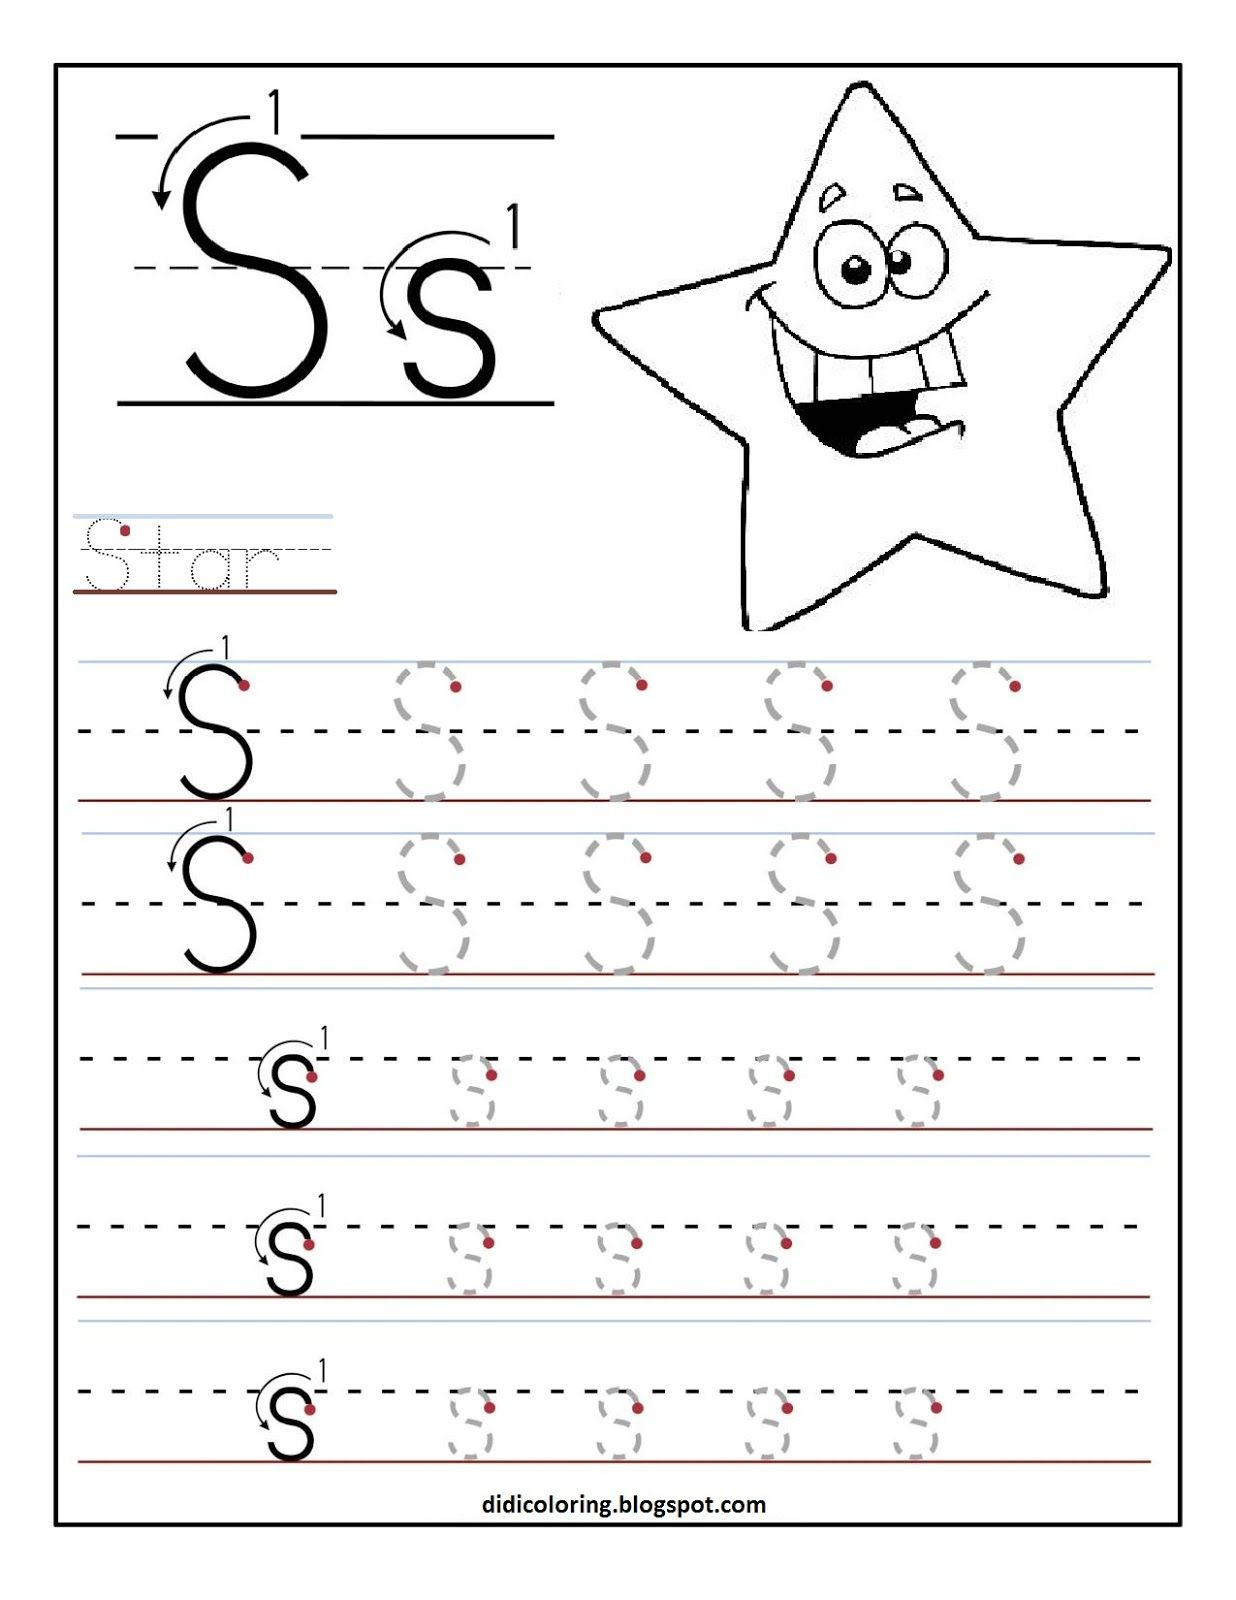 How To Write Letter S